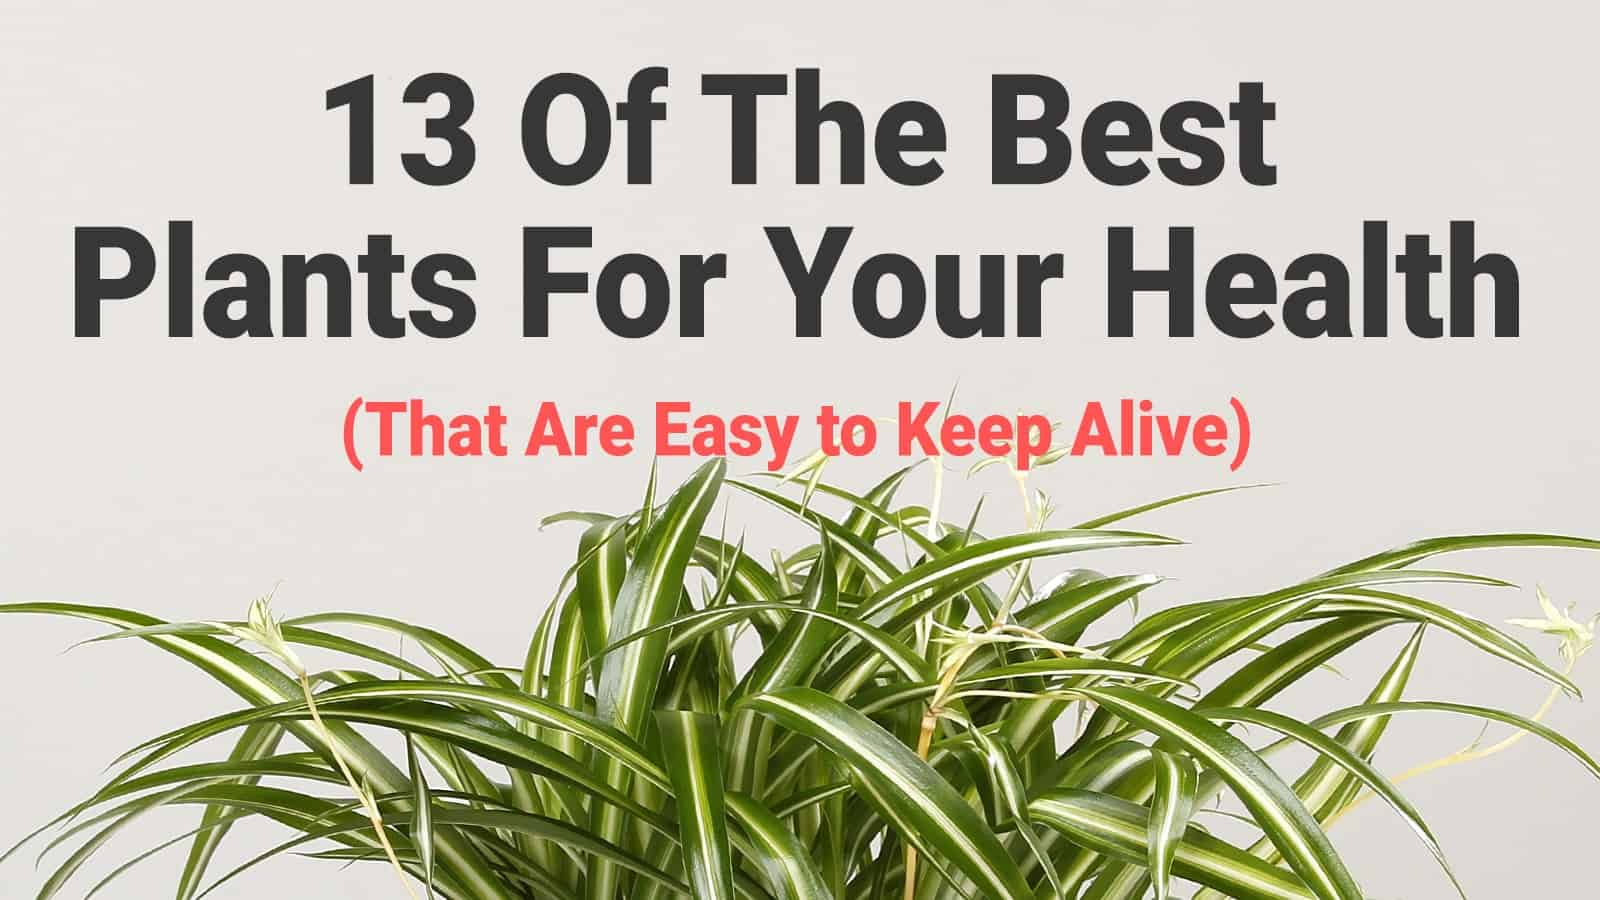 13 Of The Best Plants For Your Health (That Are Easy to Keep Alive)